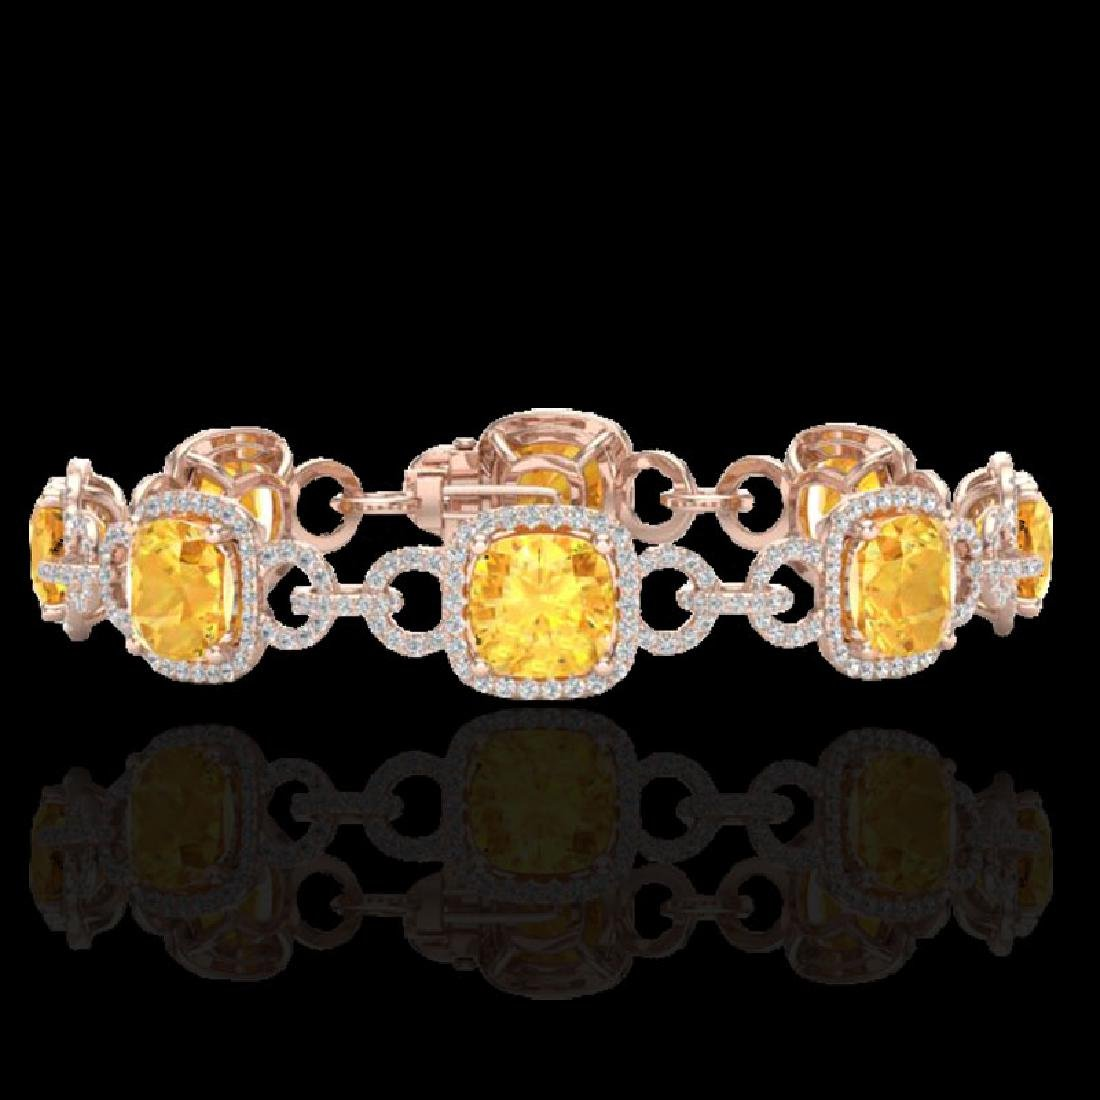 30 CTW Citrine & Micro VS/SI Diamond Bracelet 14K Rose